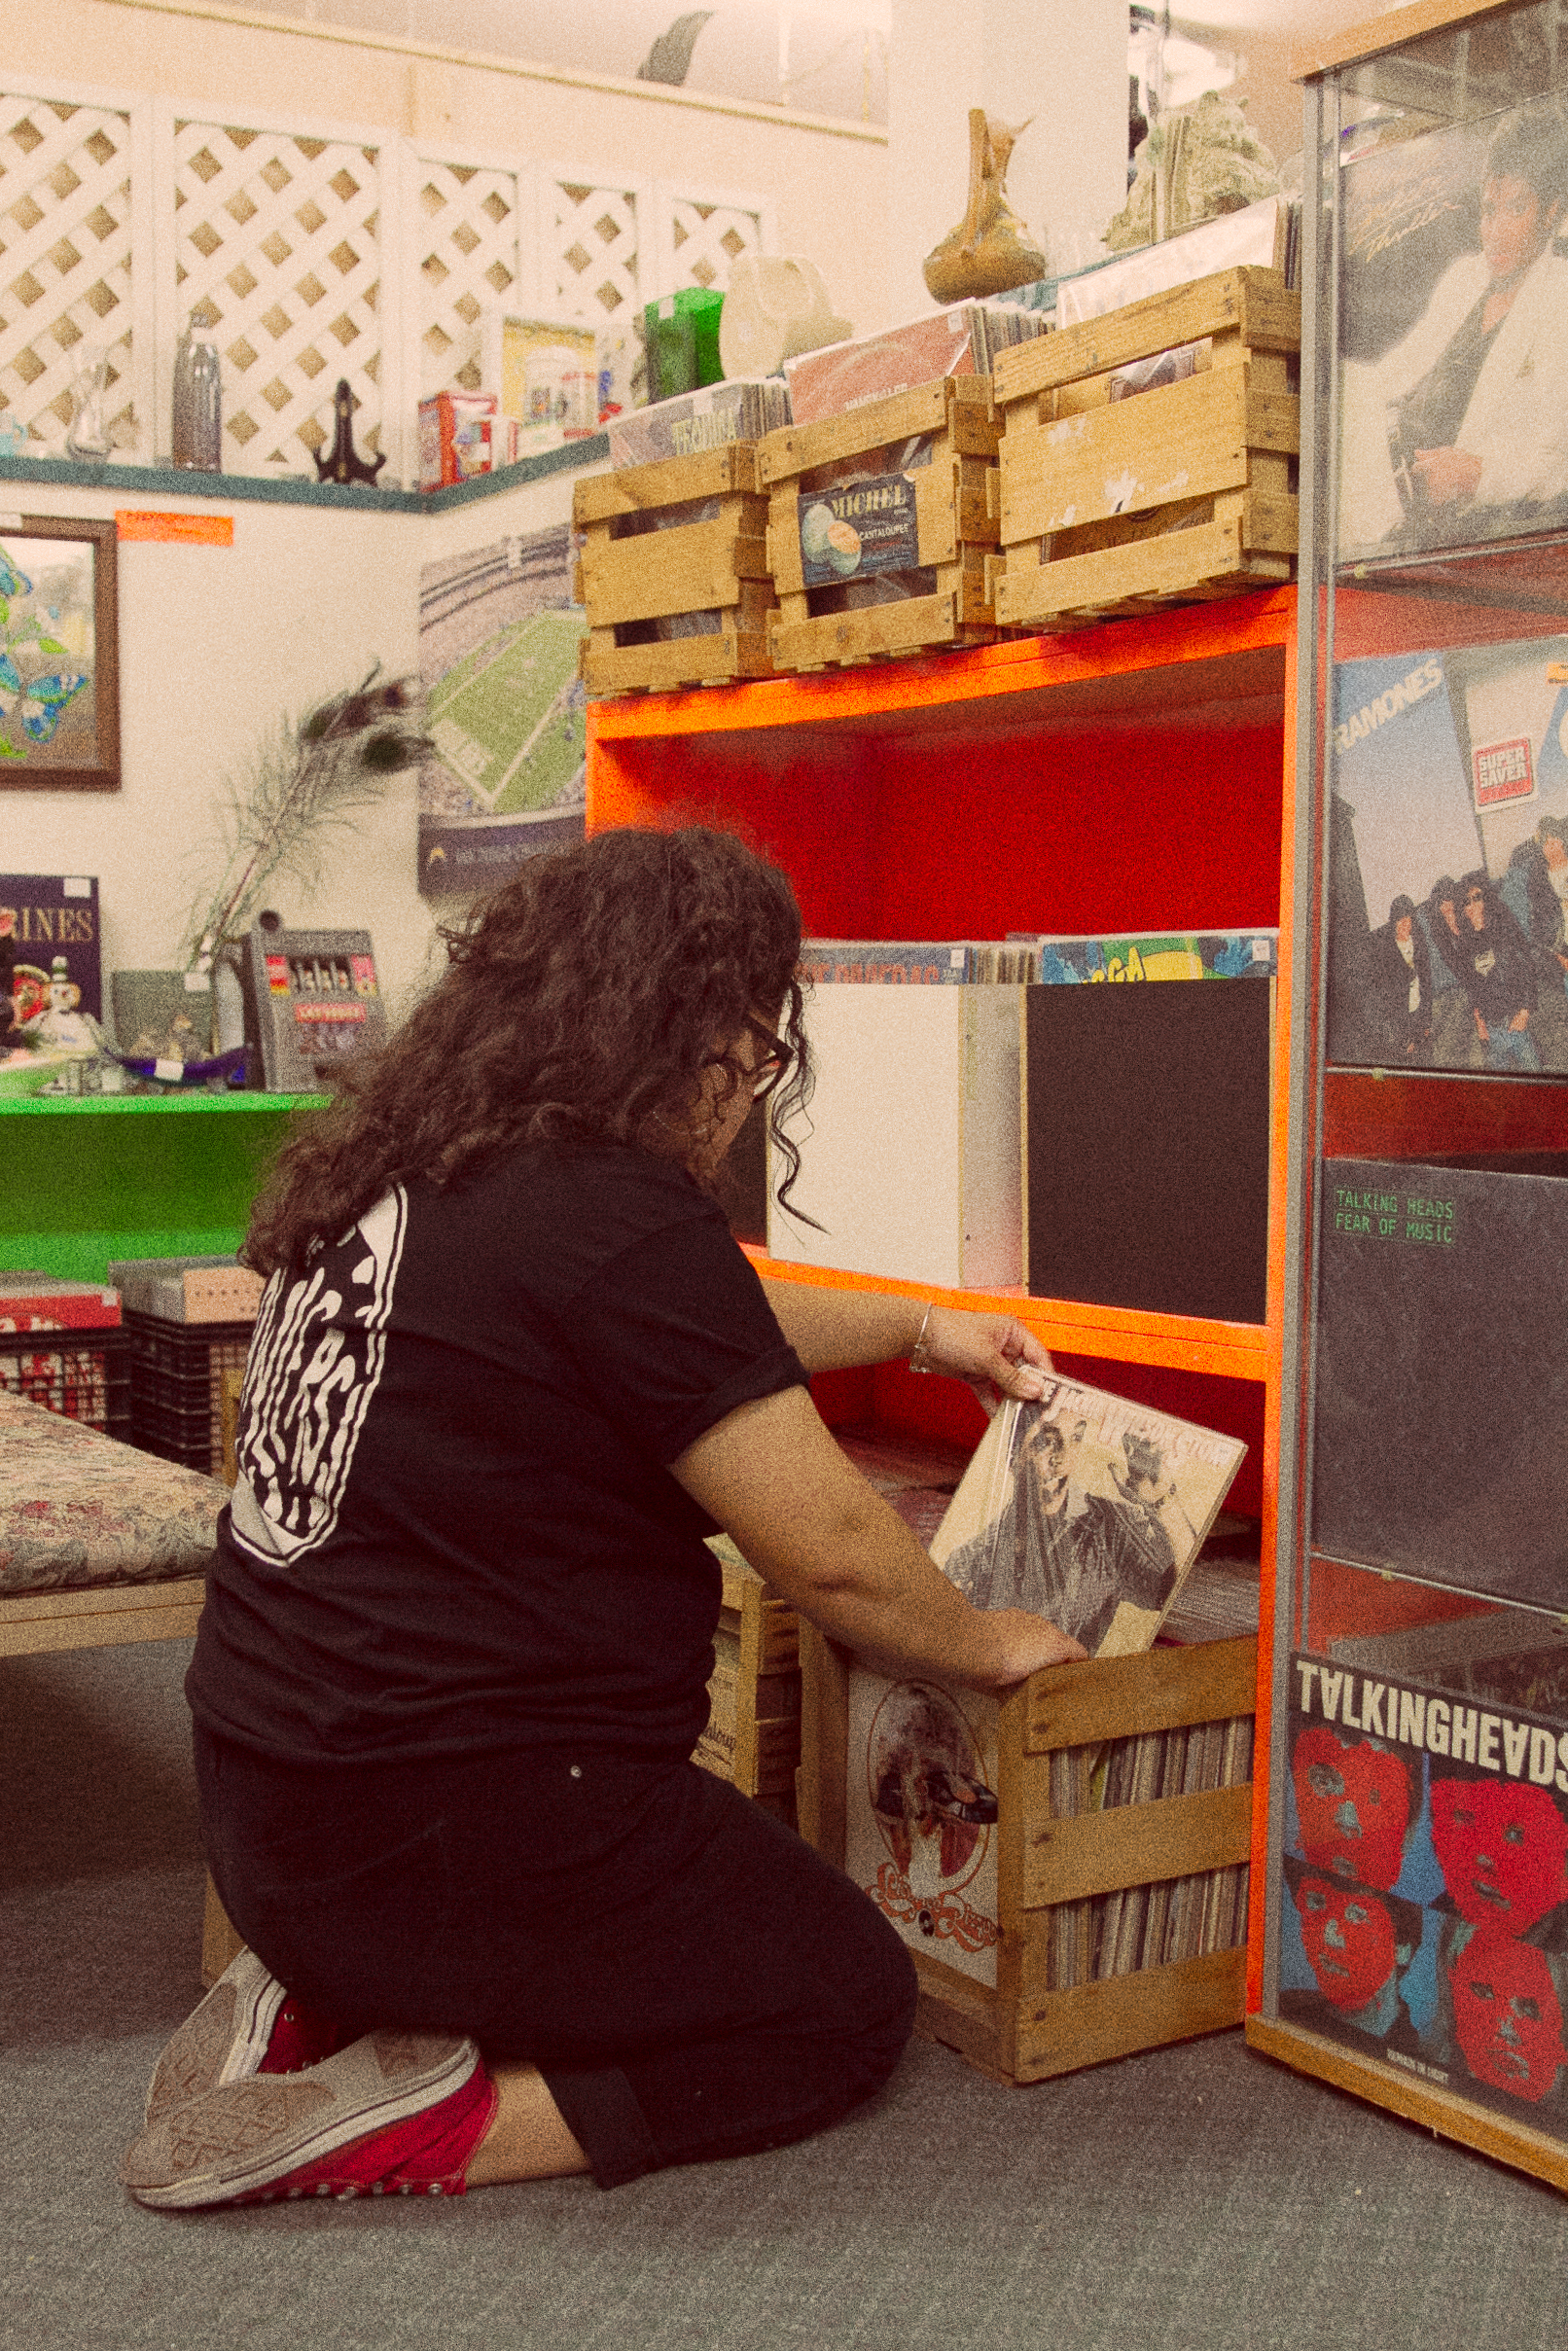 I collect vinyl because it truly fills my heart and ears with warmth. -